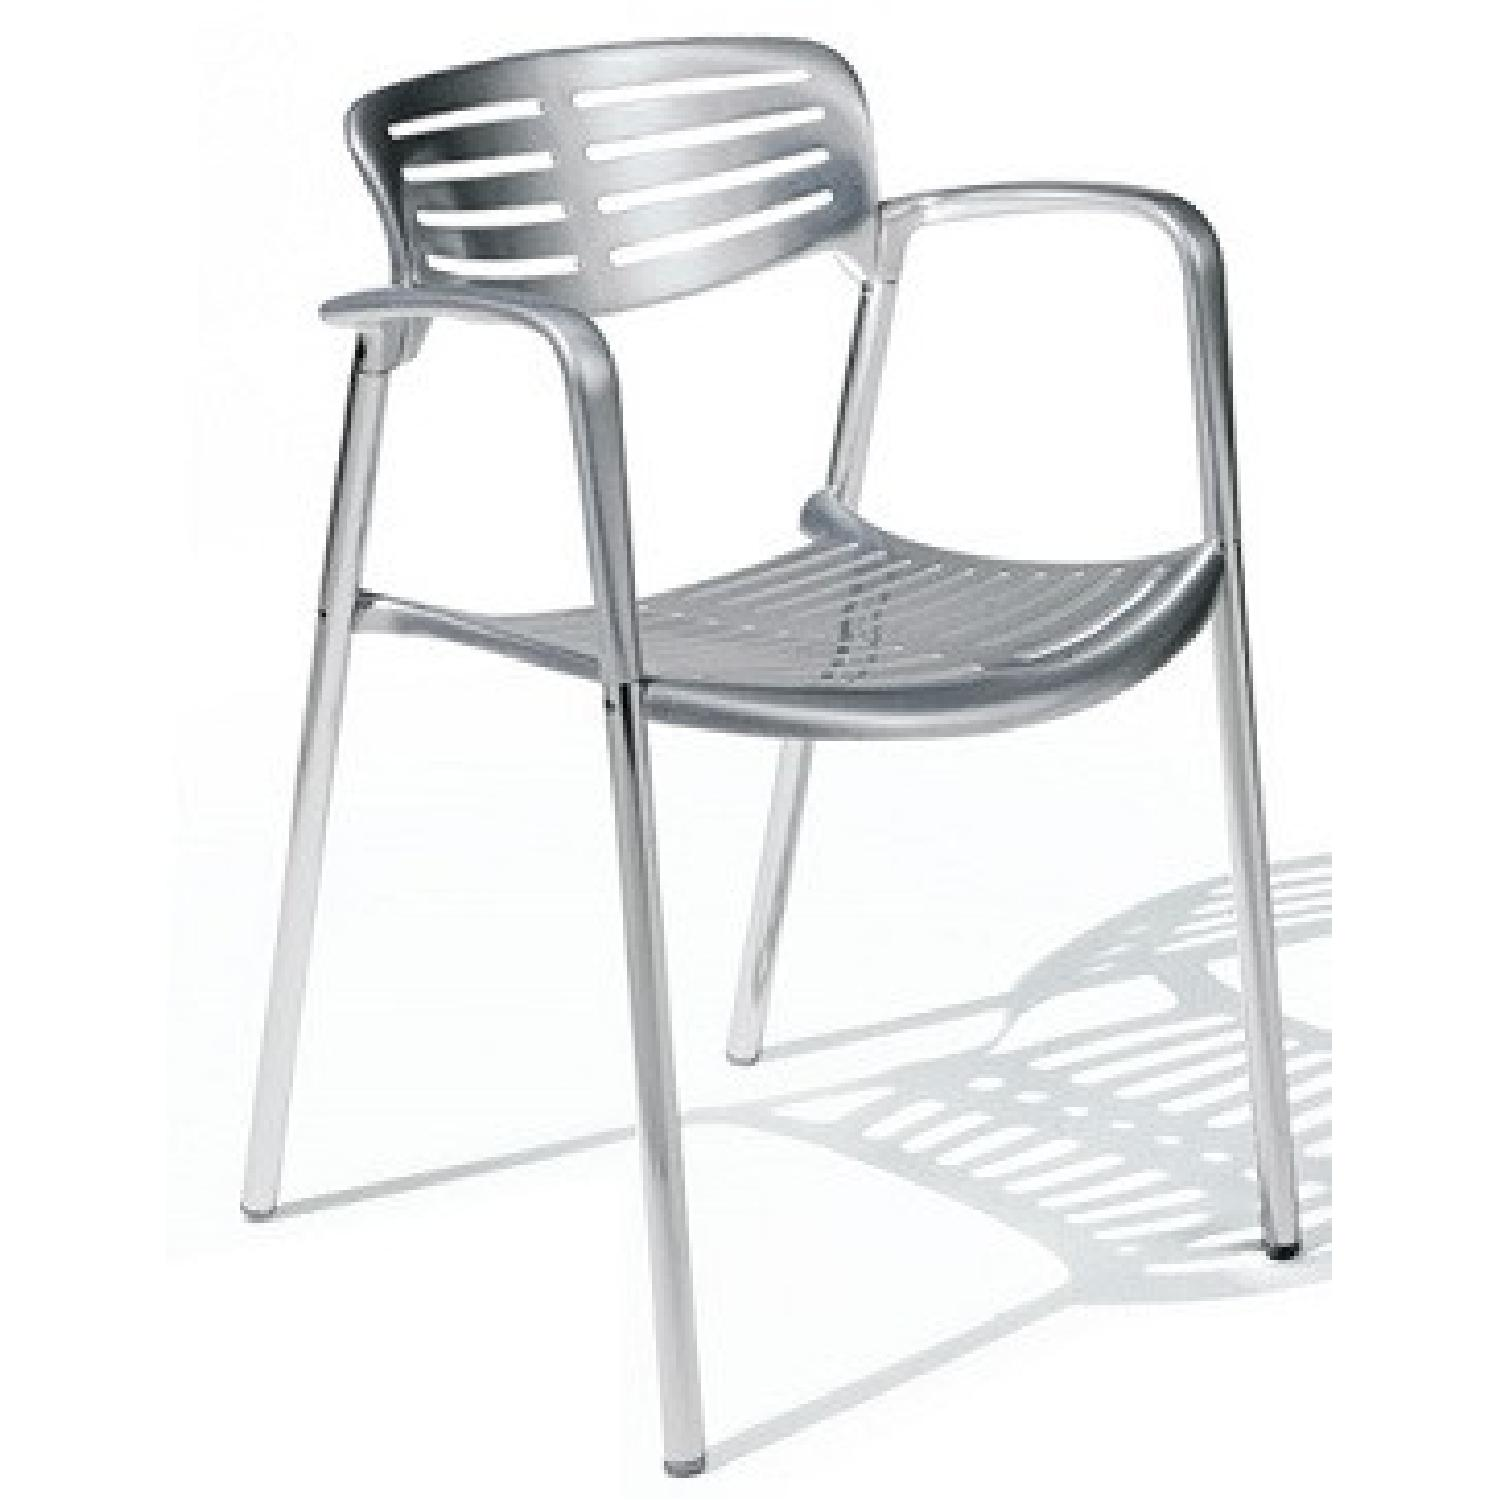 Knoll Toledo Chairs - image-7